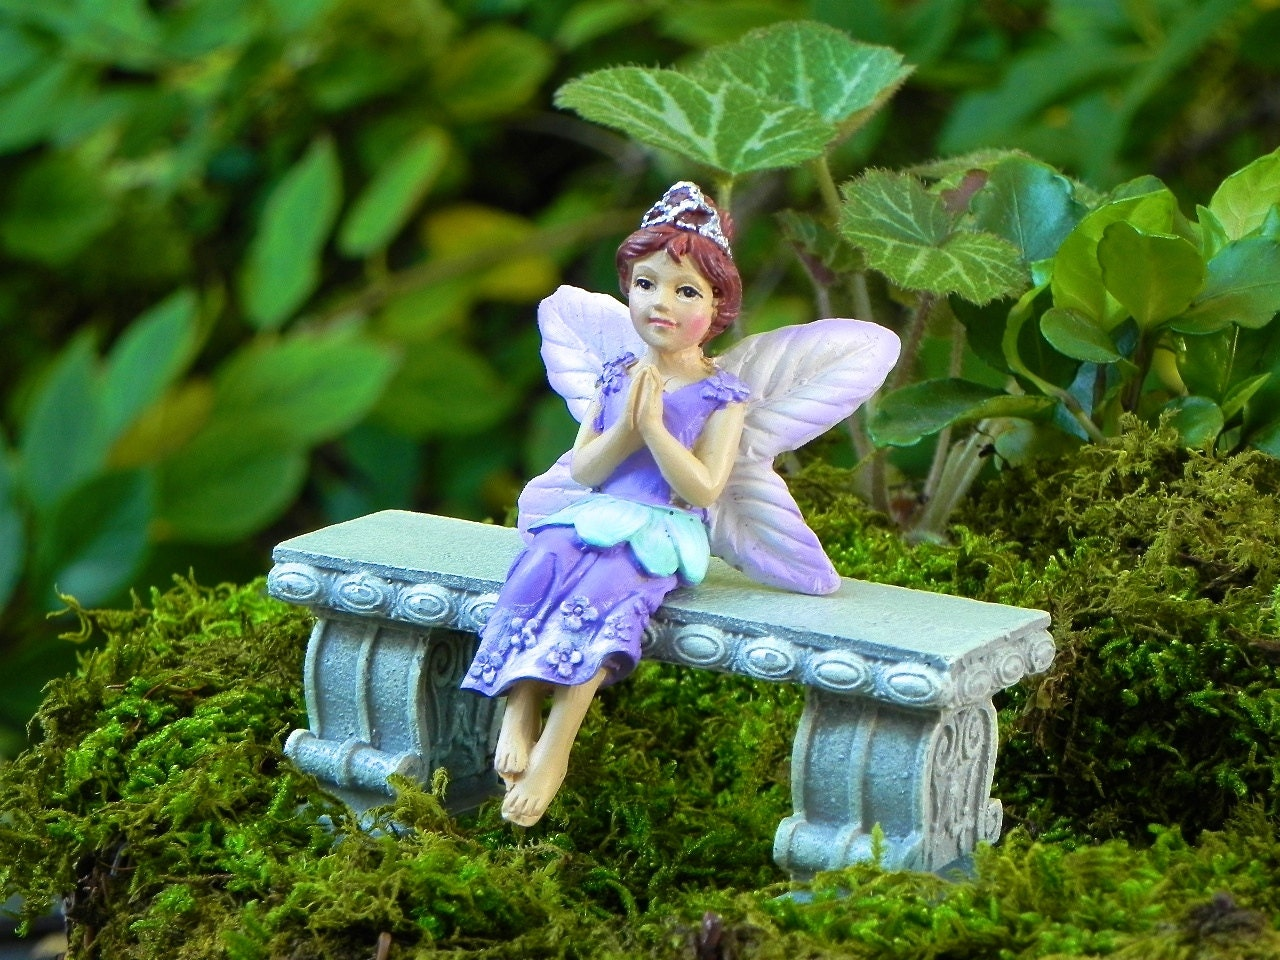 Fairy garden fairy princess figurine miniature garden for Fairy garden figurines